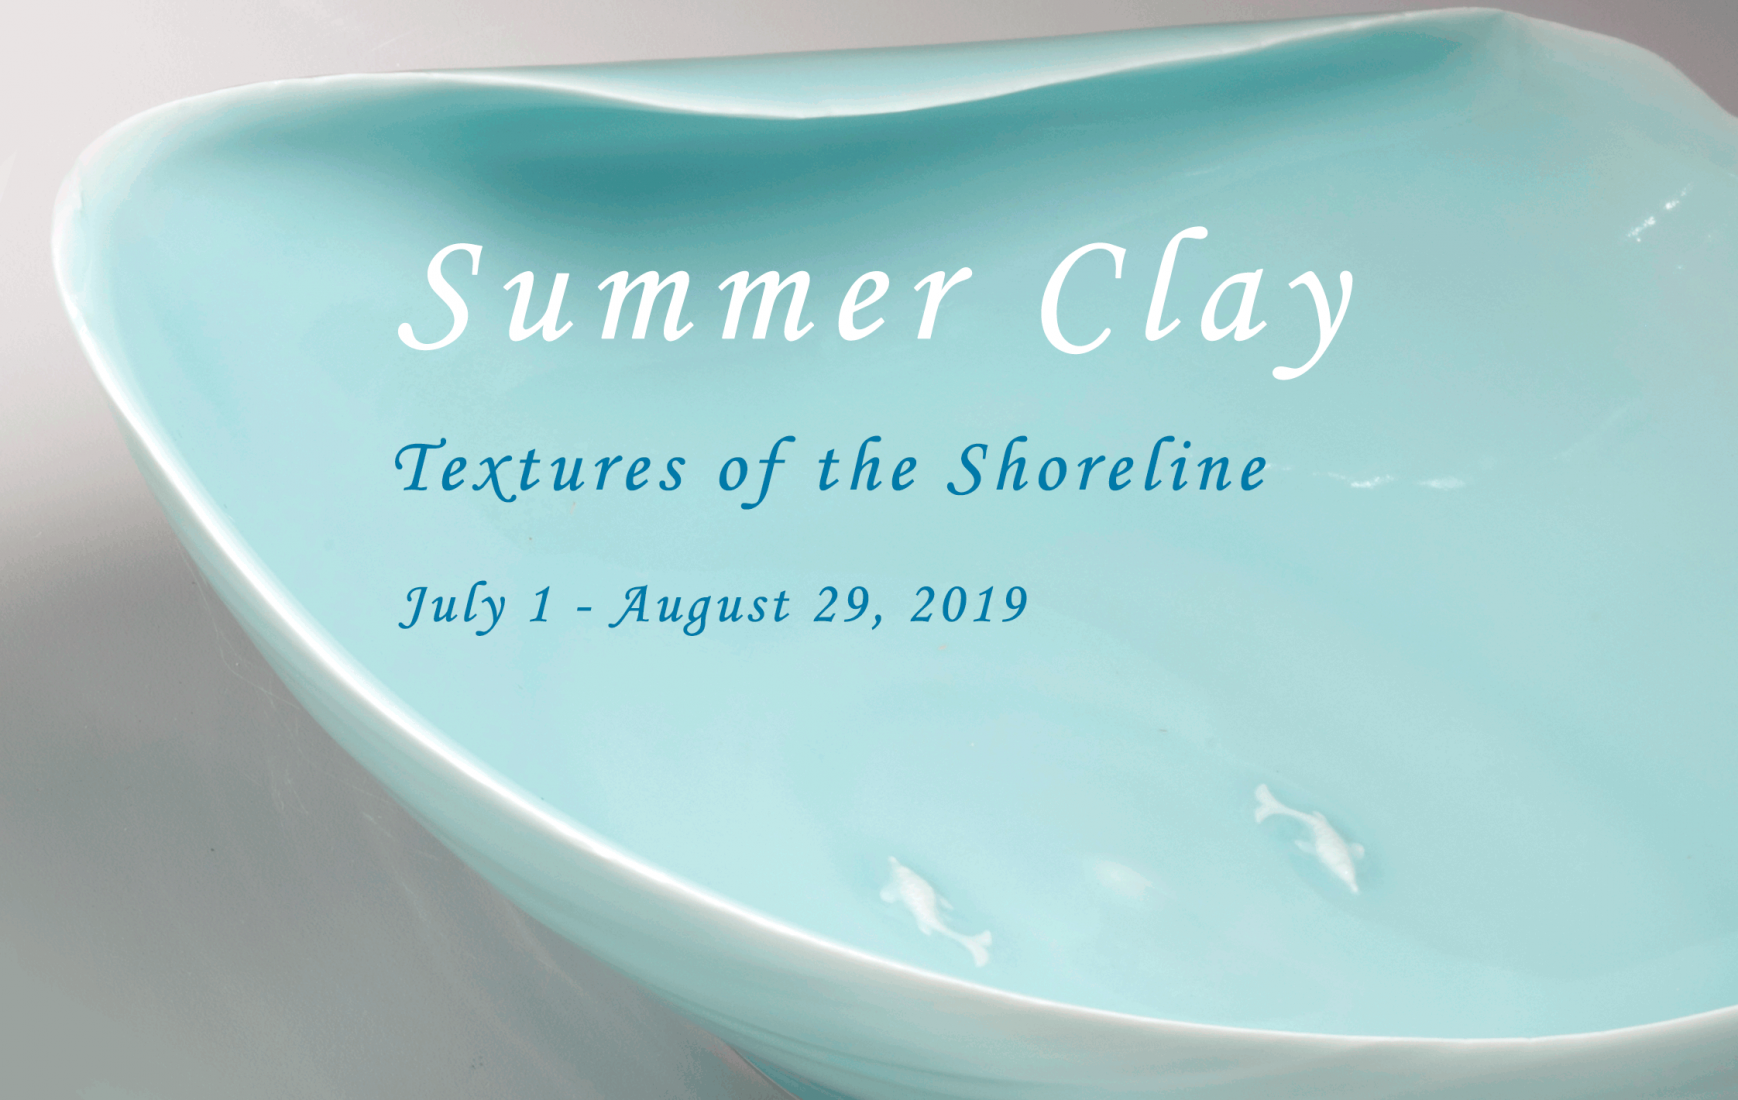 Exhibition, Summer Clay, Textures of the Shoreline, July 1st to August 29th, 2019